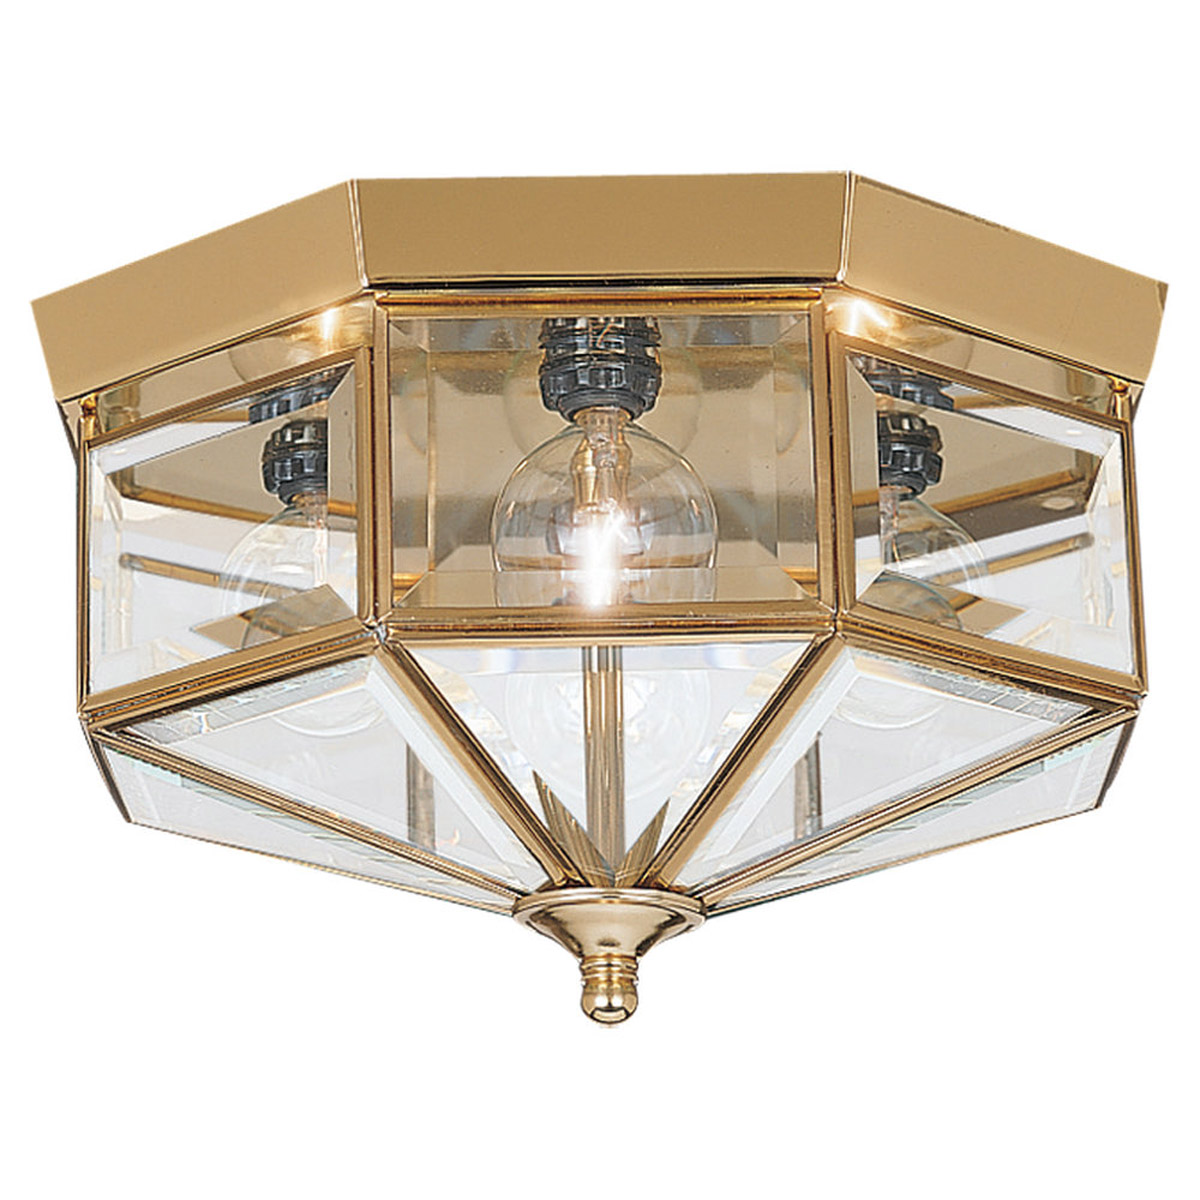 Sea Gull Lighting Grandover 4 Light Flush Mount in Polished Brass 7662-02 photo